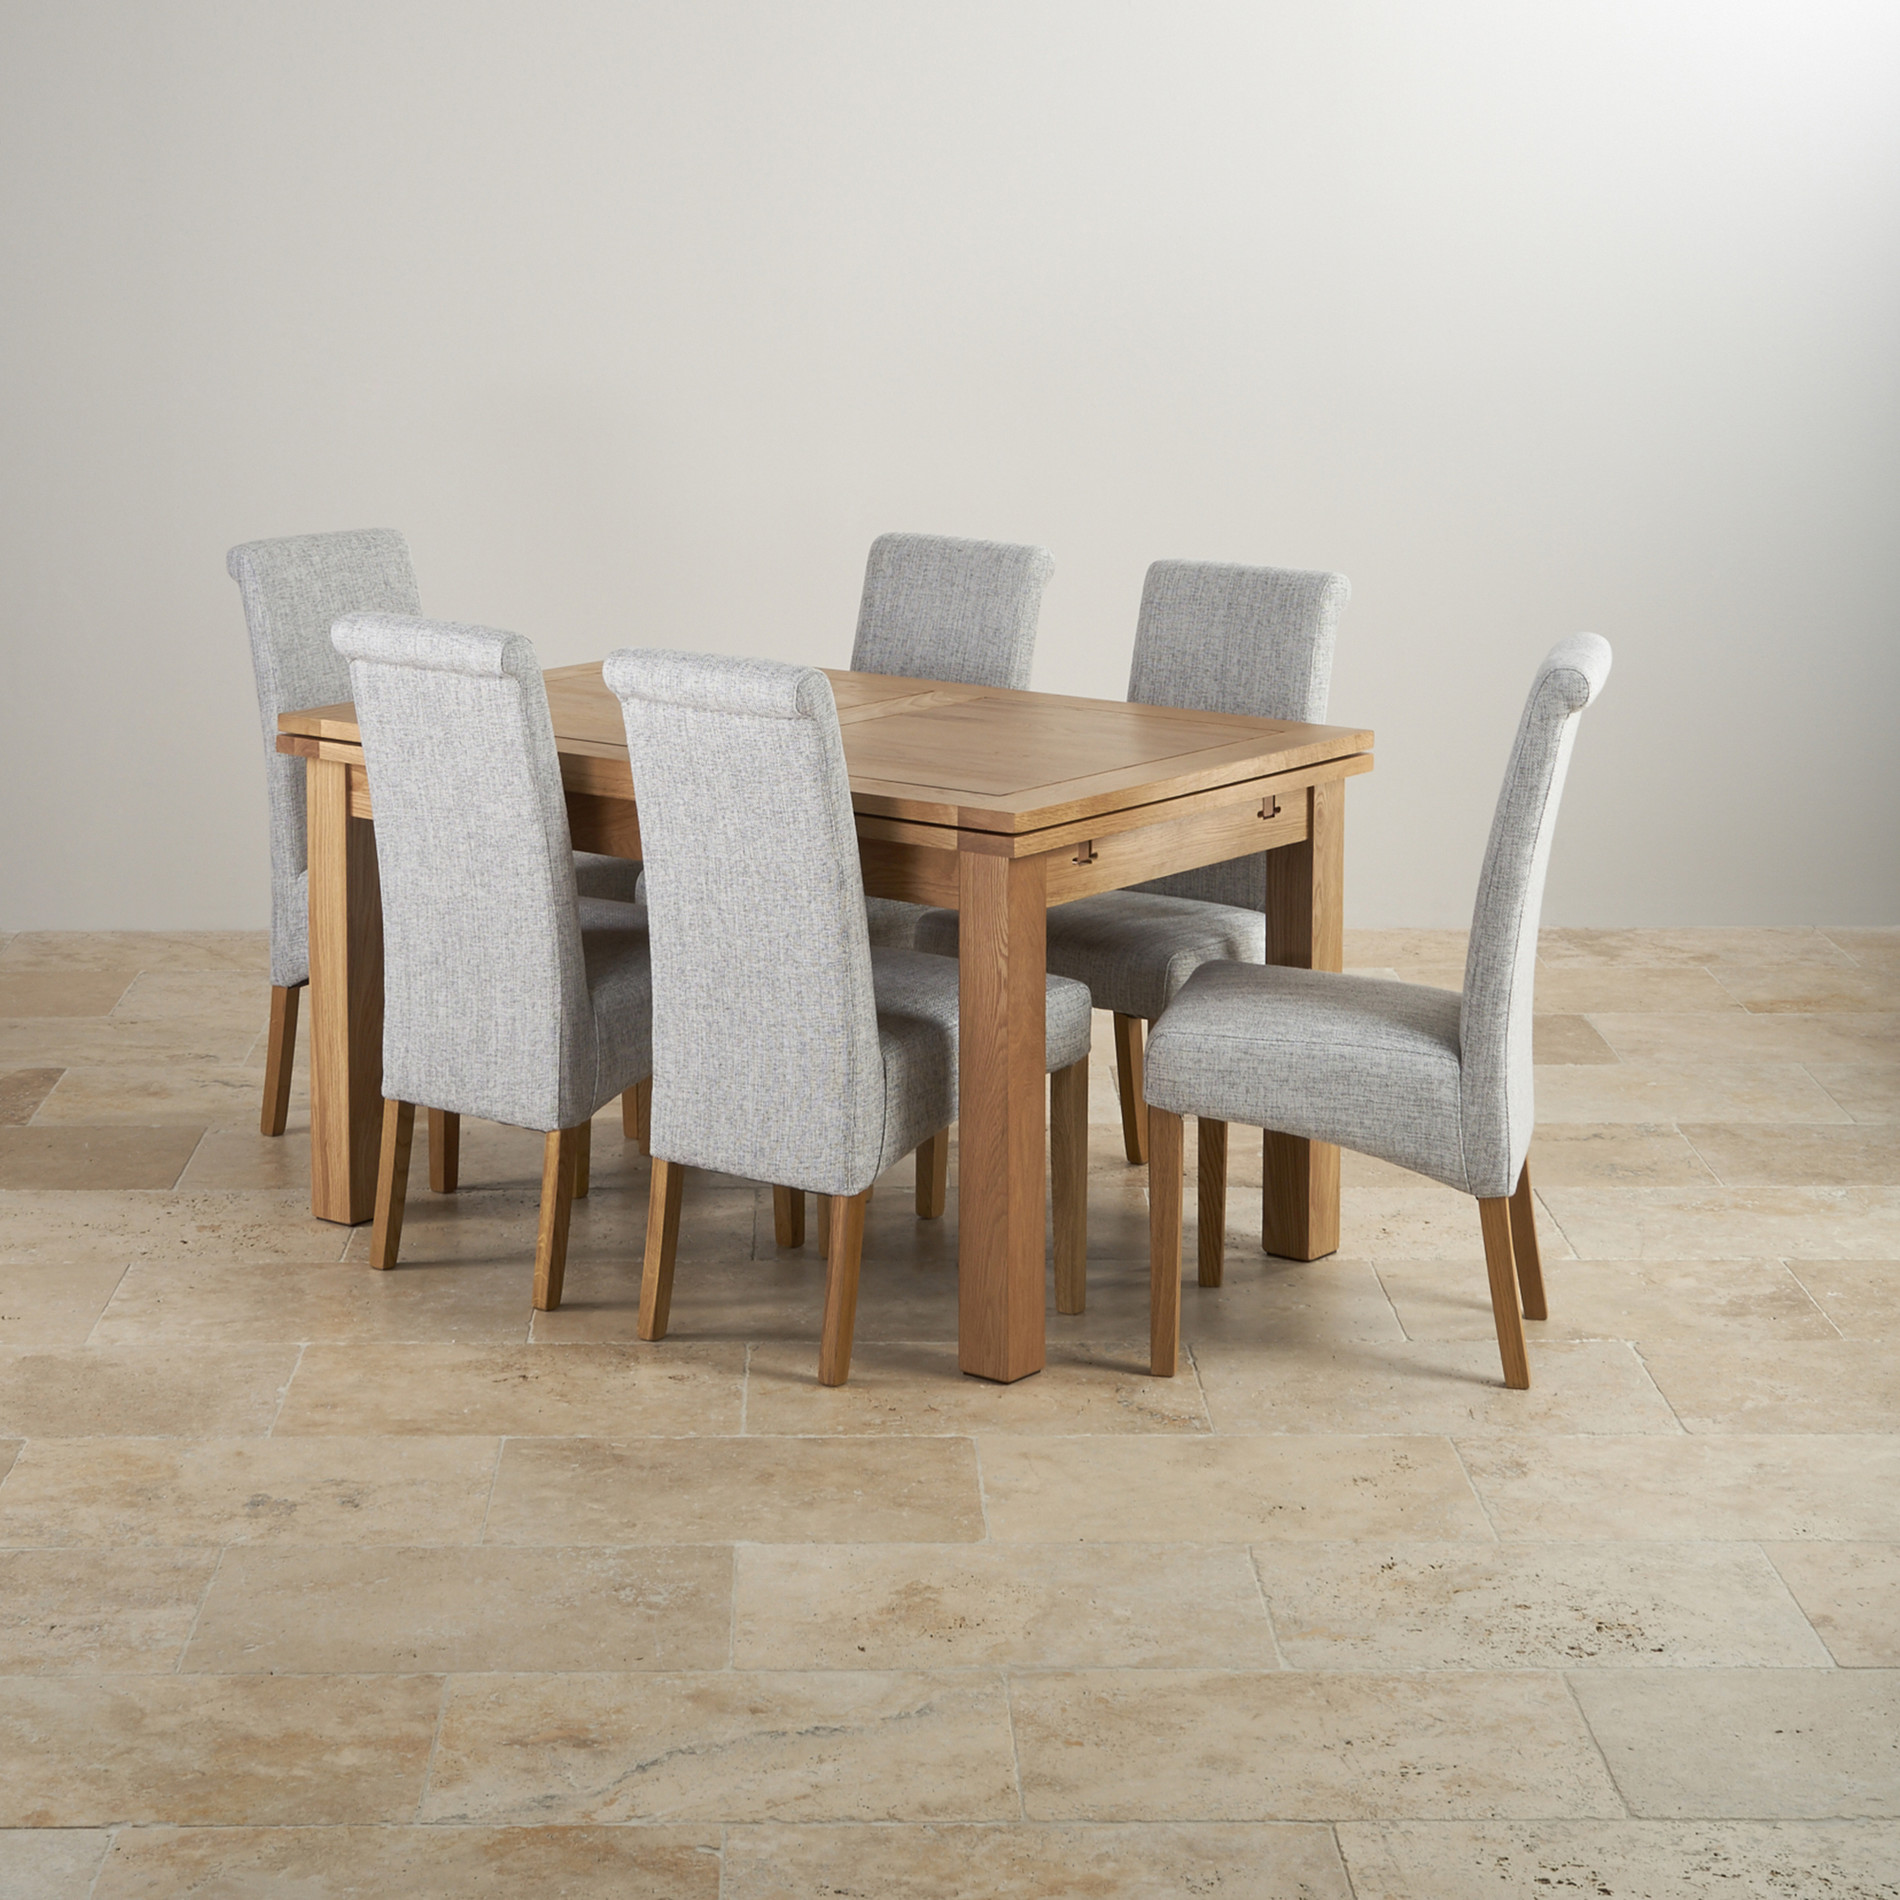 Dorset Dining Set in Oak Extending Table 6 Grey Fabric Chairs